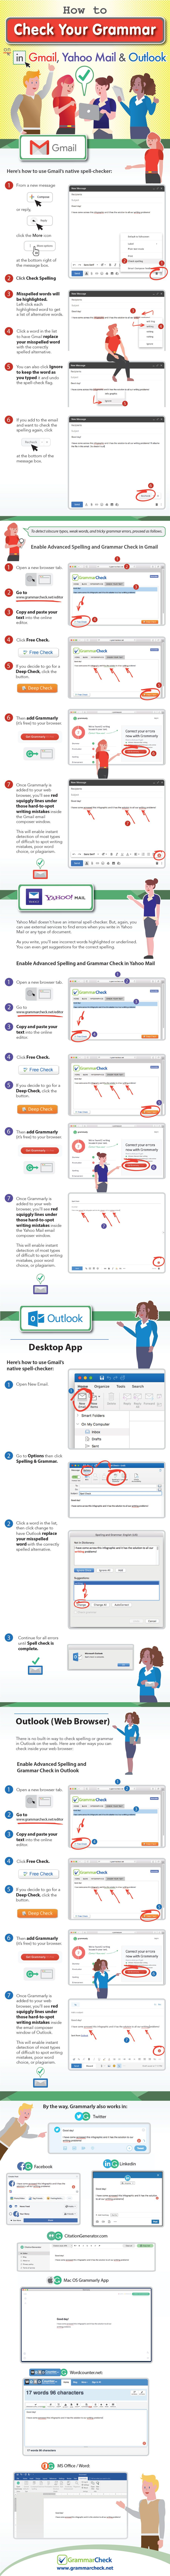 How to Check Your Grammar in Gmail, Yahoo Mail & Outlook (Infographic)